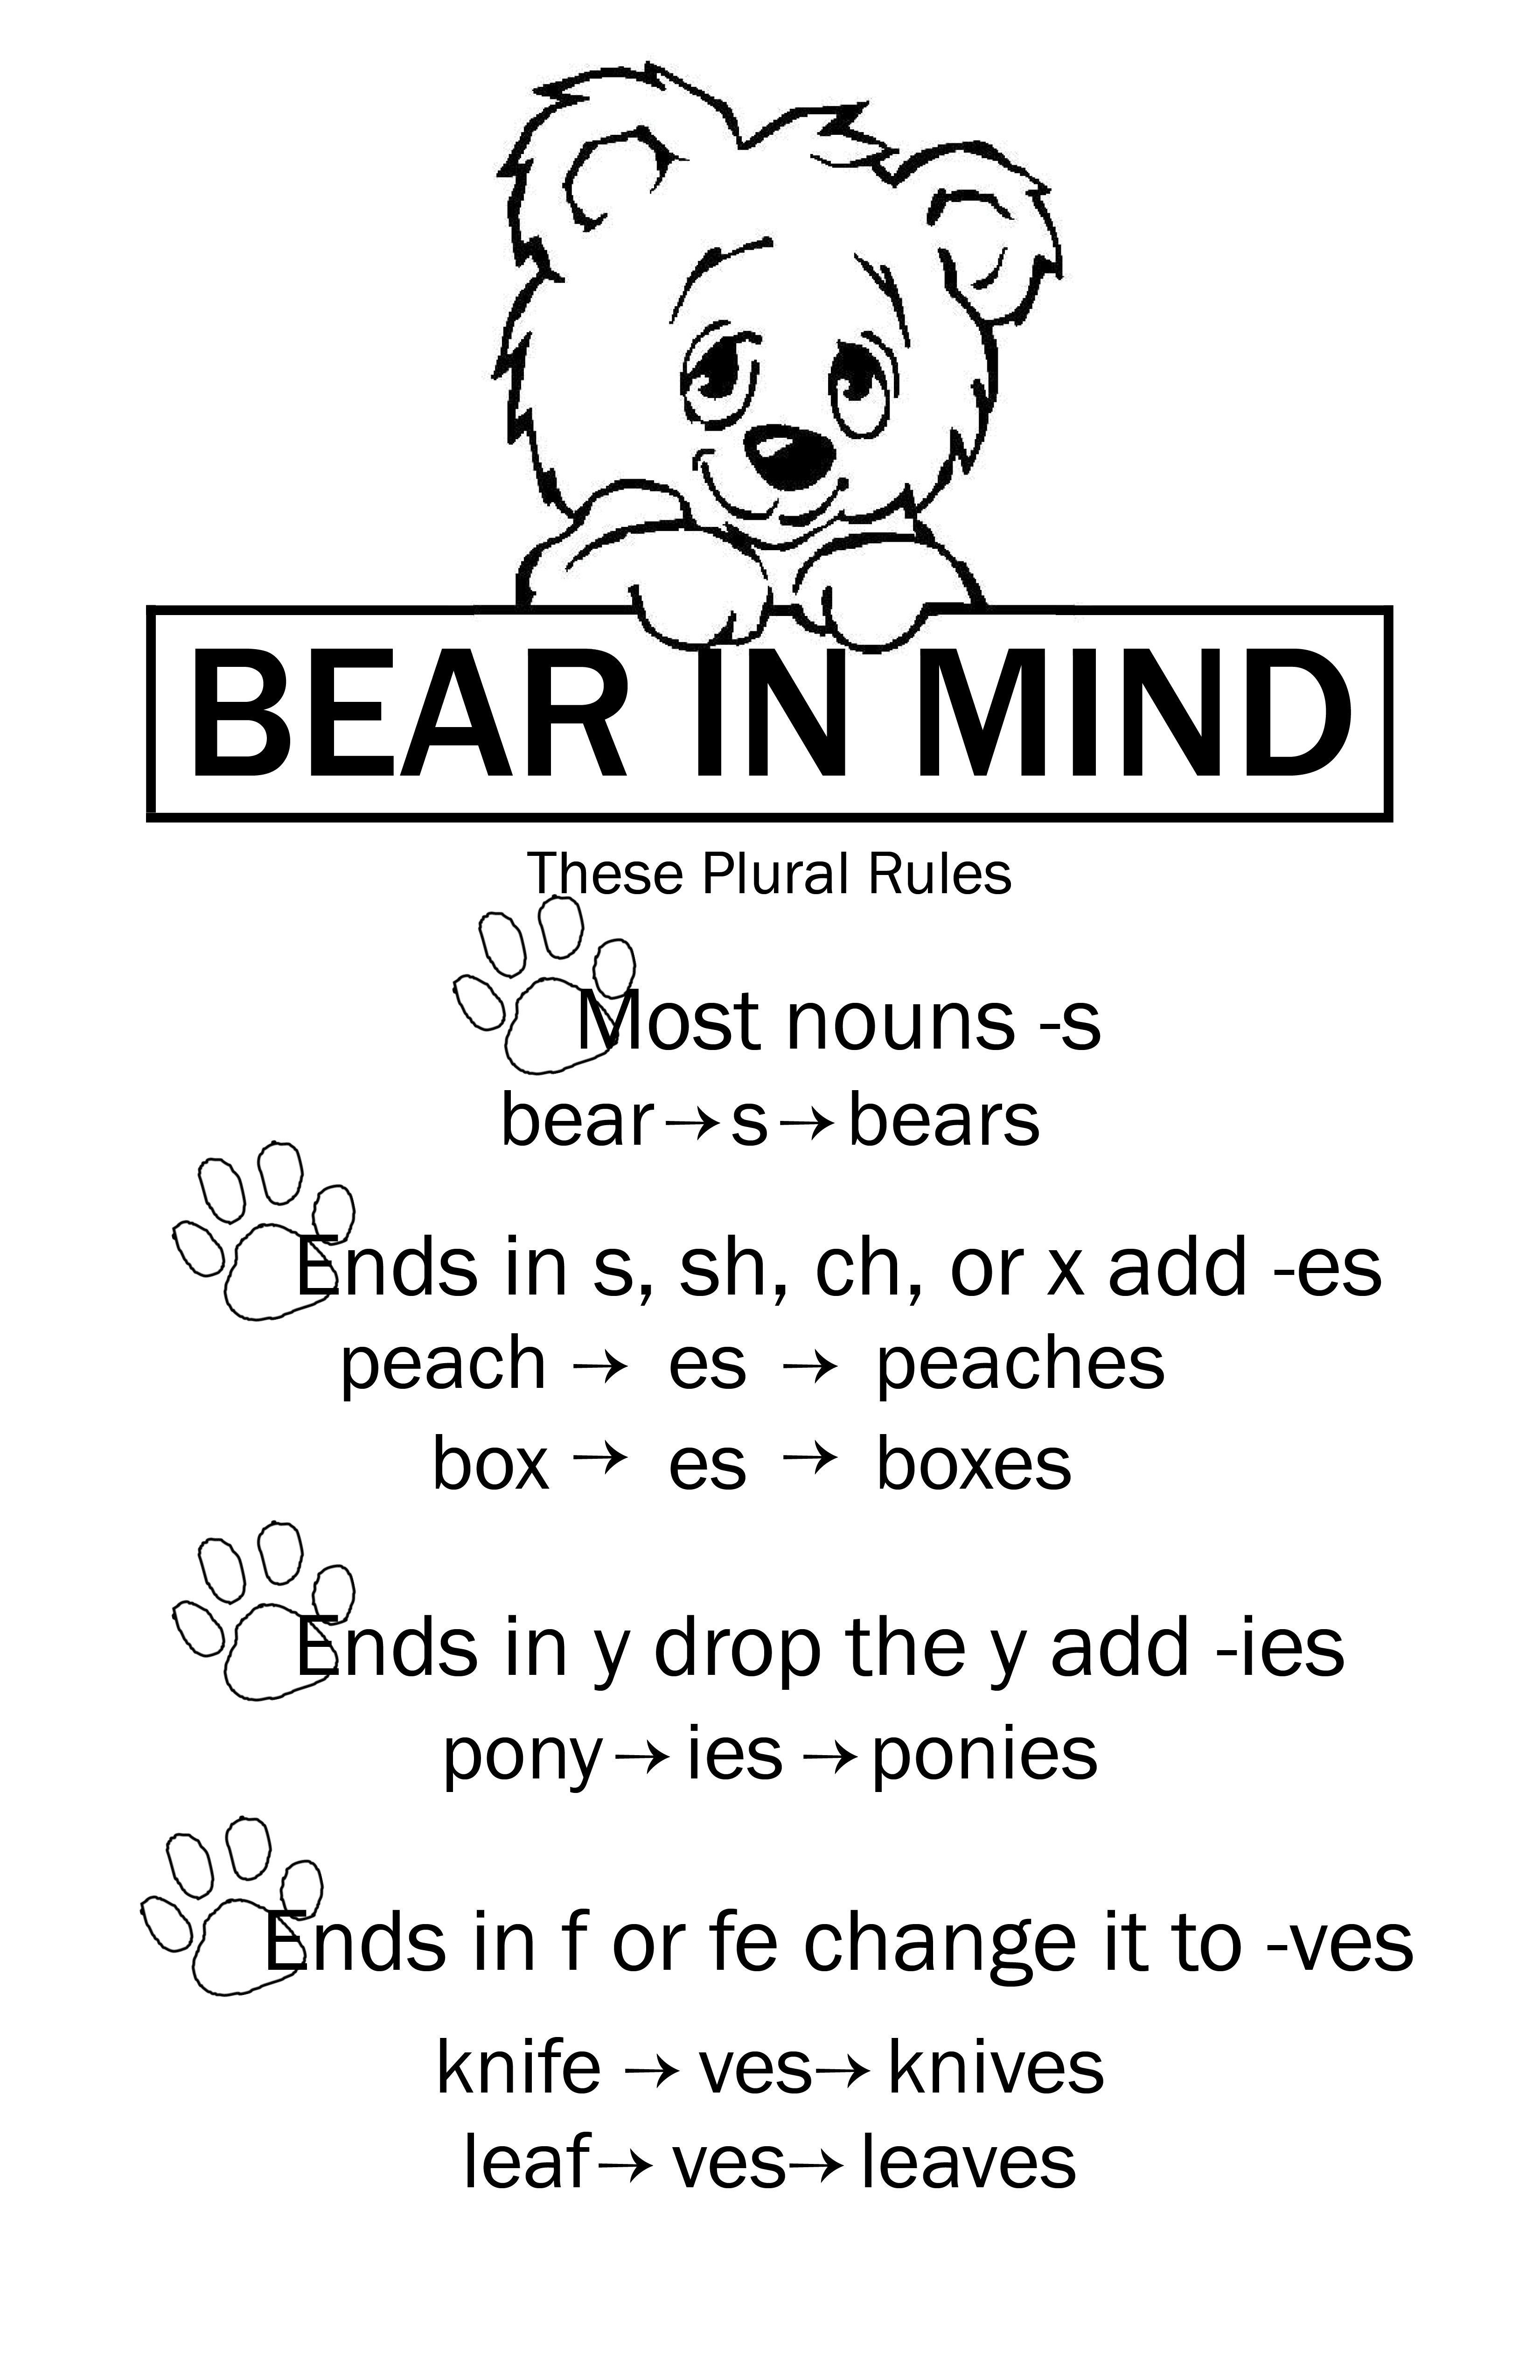 Plural Rules For Nouns Cute Way To Display 11x17 Poster